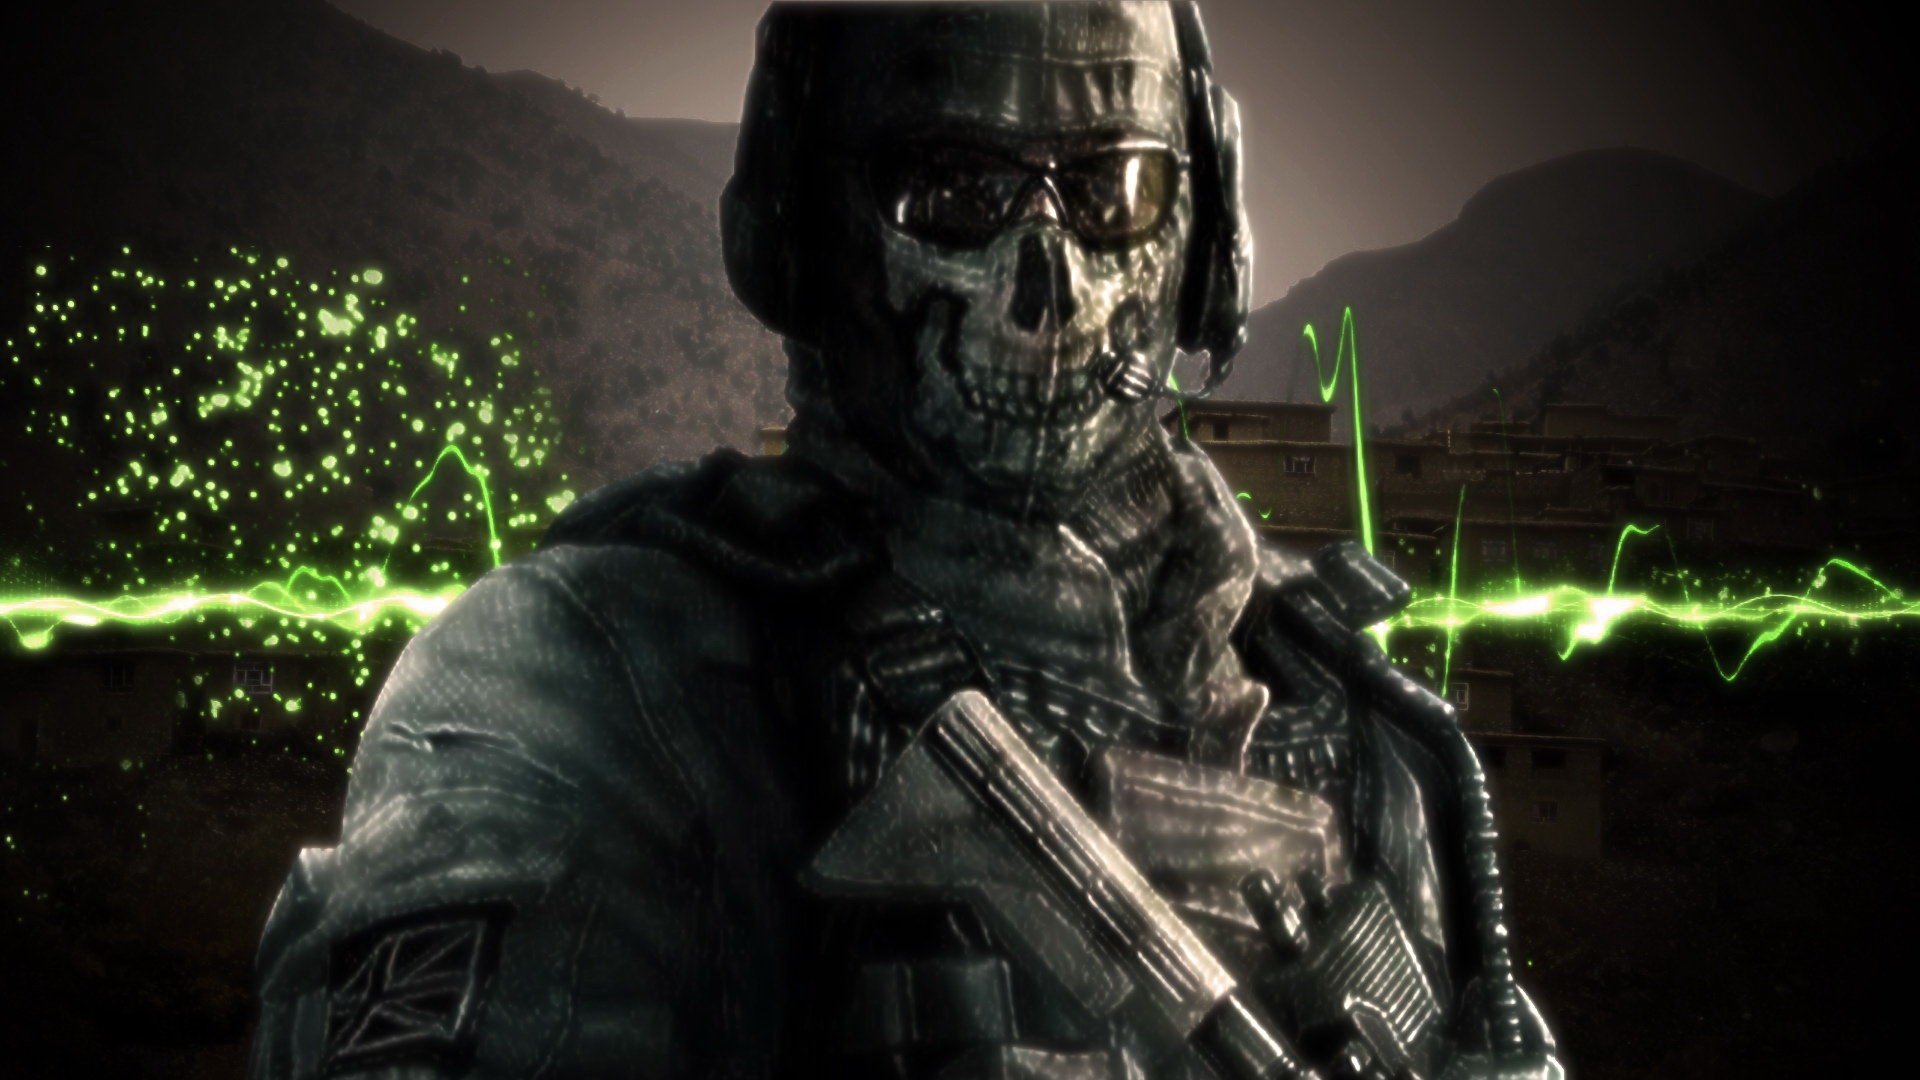 Call Of Duty Ghosts Wallpaper, Top 43 Call Of Duty Ghosts